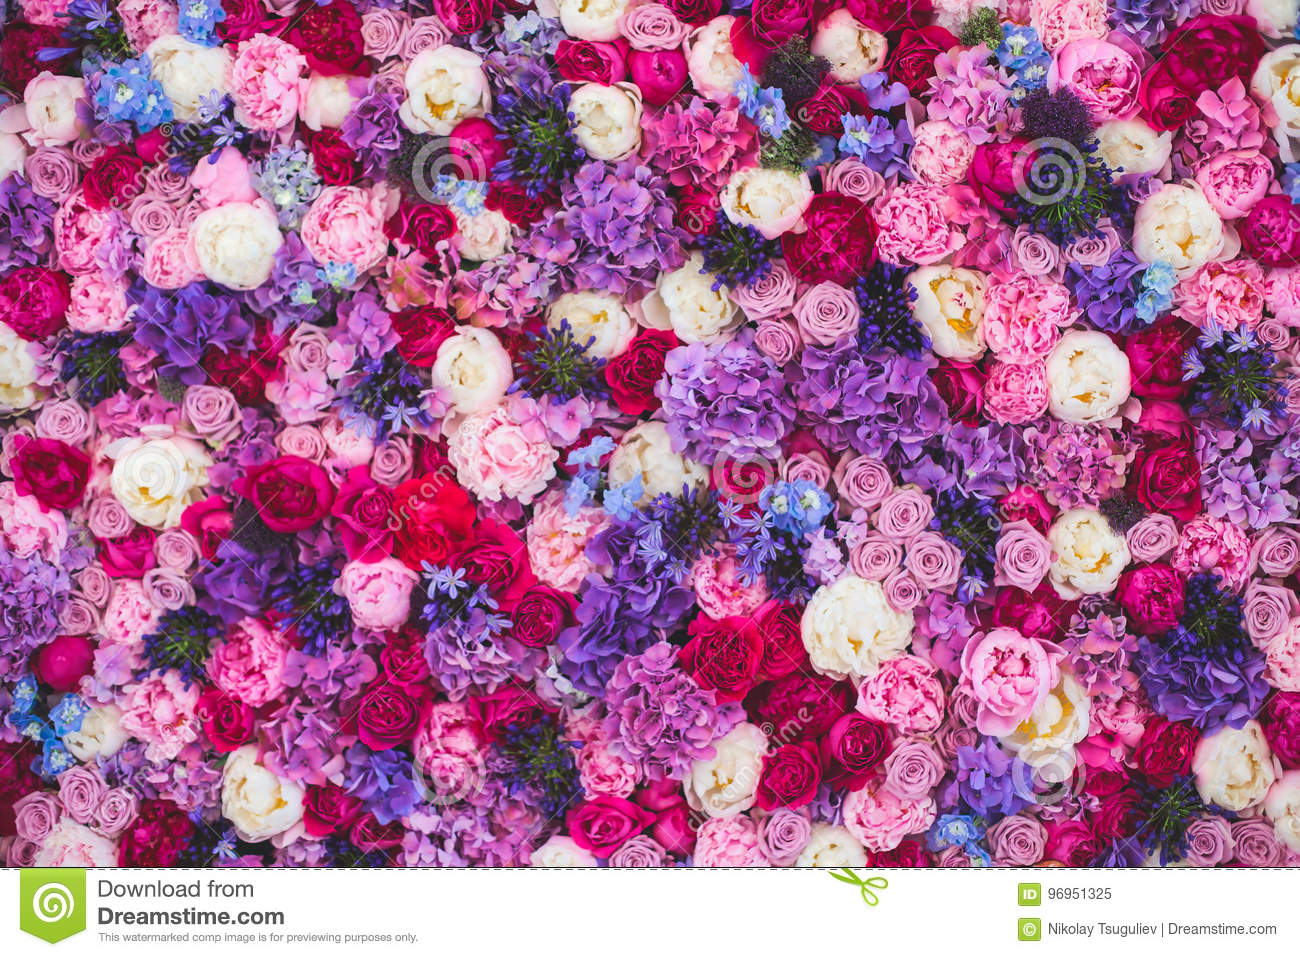 Beautiful wall made of red violet purple flowers, roses, tulips, press-wall, background